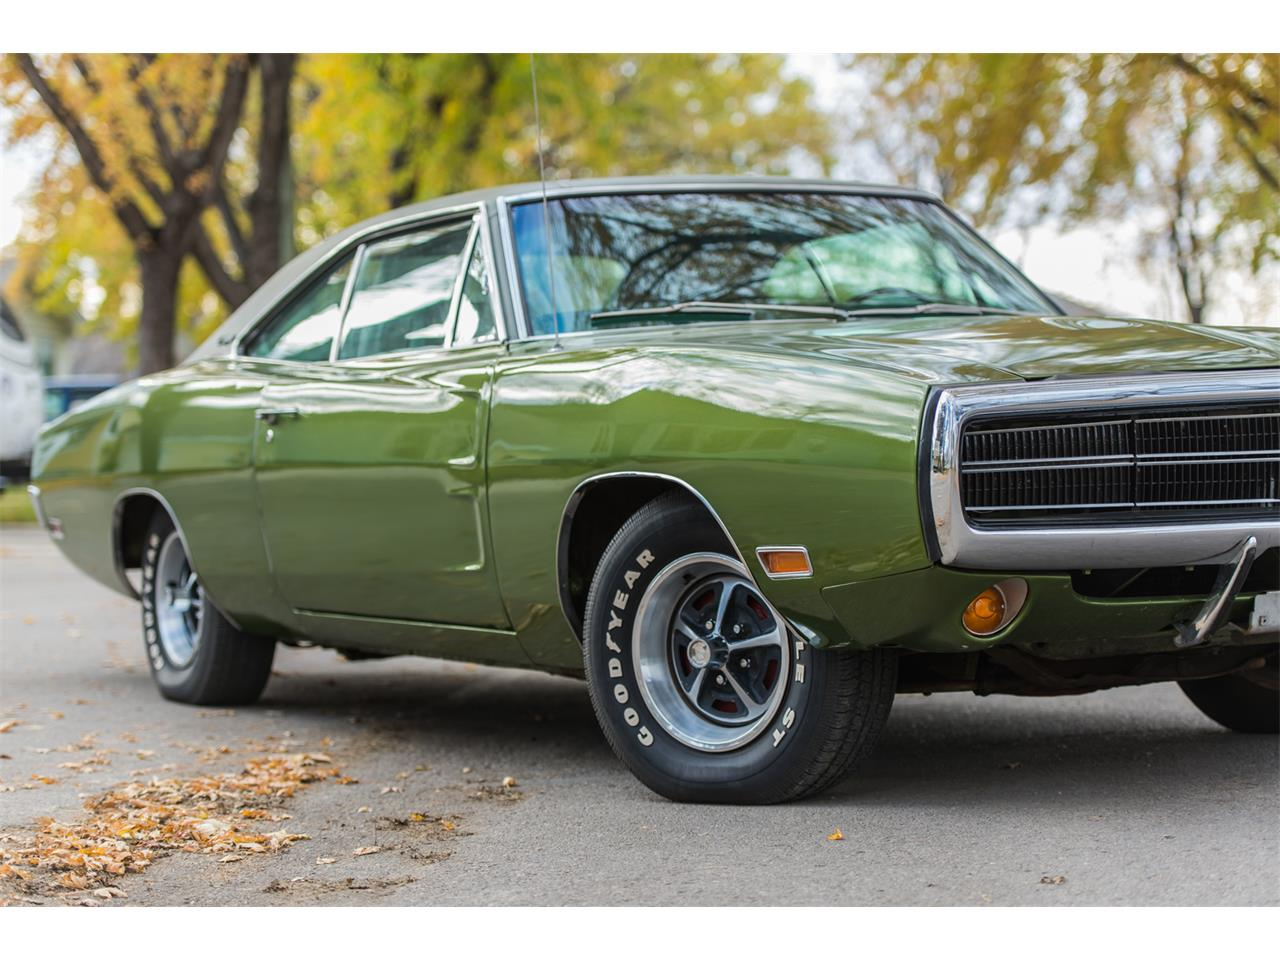 Large Picture of '70 Dodge Charger - $49,500.00 - H702